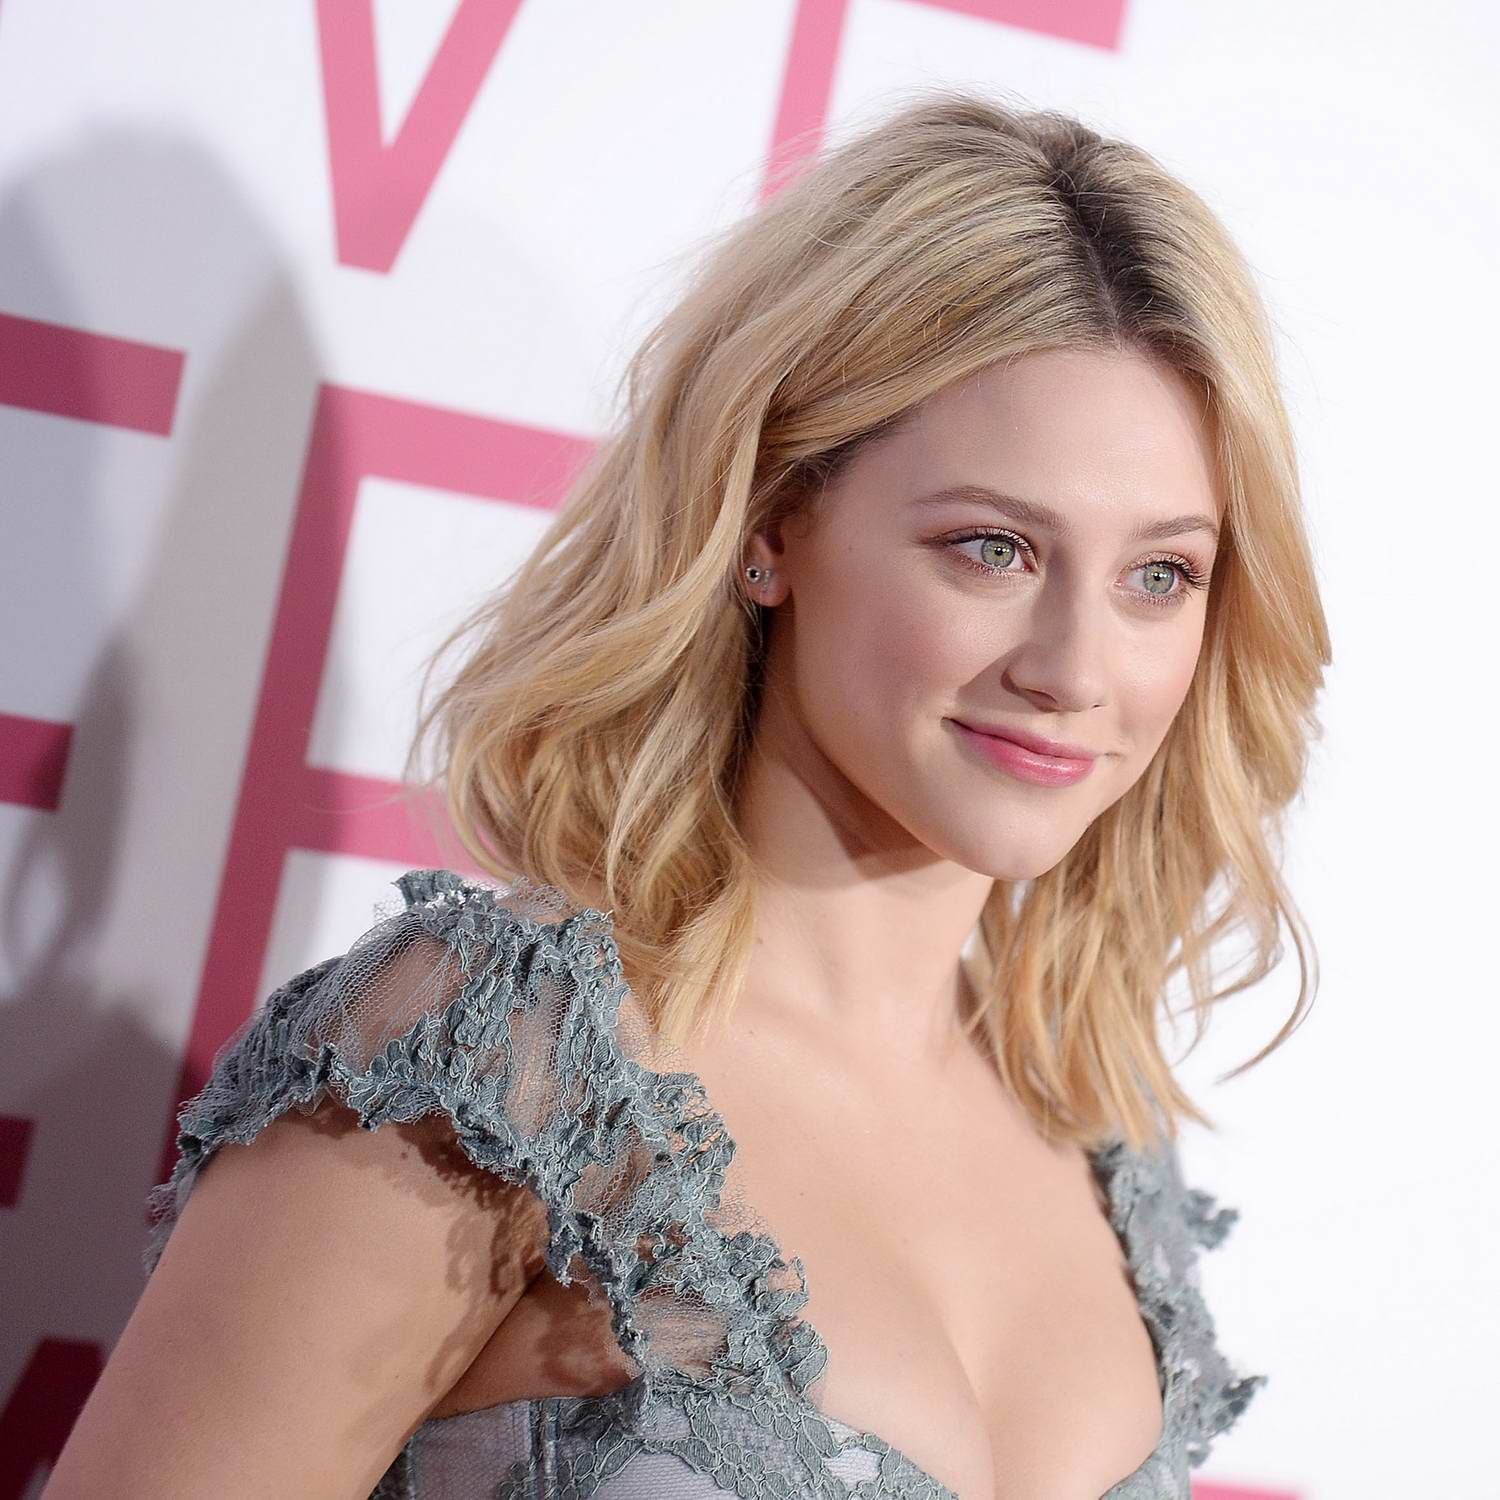 Lili Reinhart Attends The Premiere Of 'five Feet Apart' In